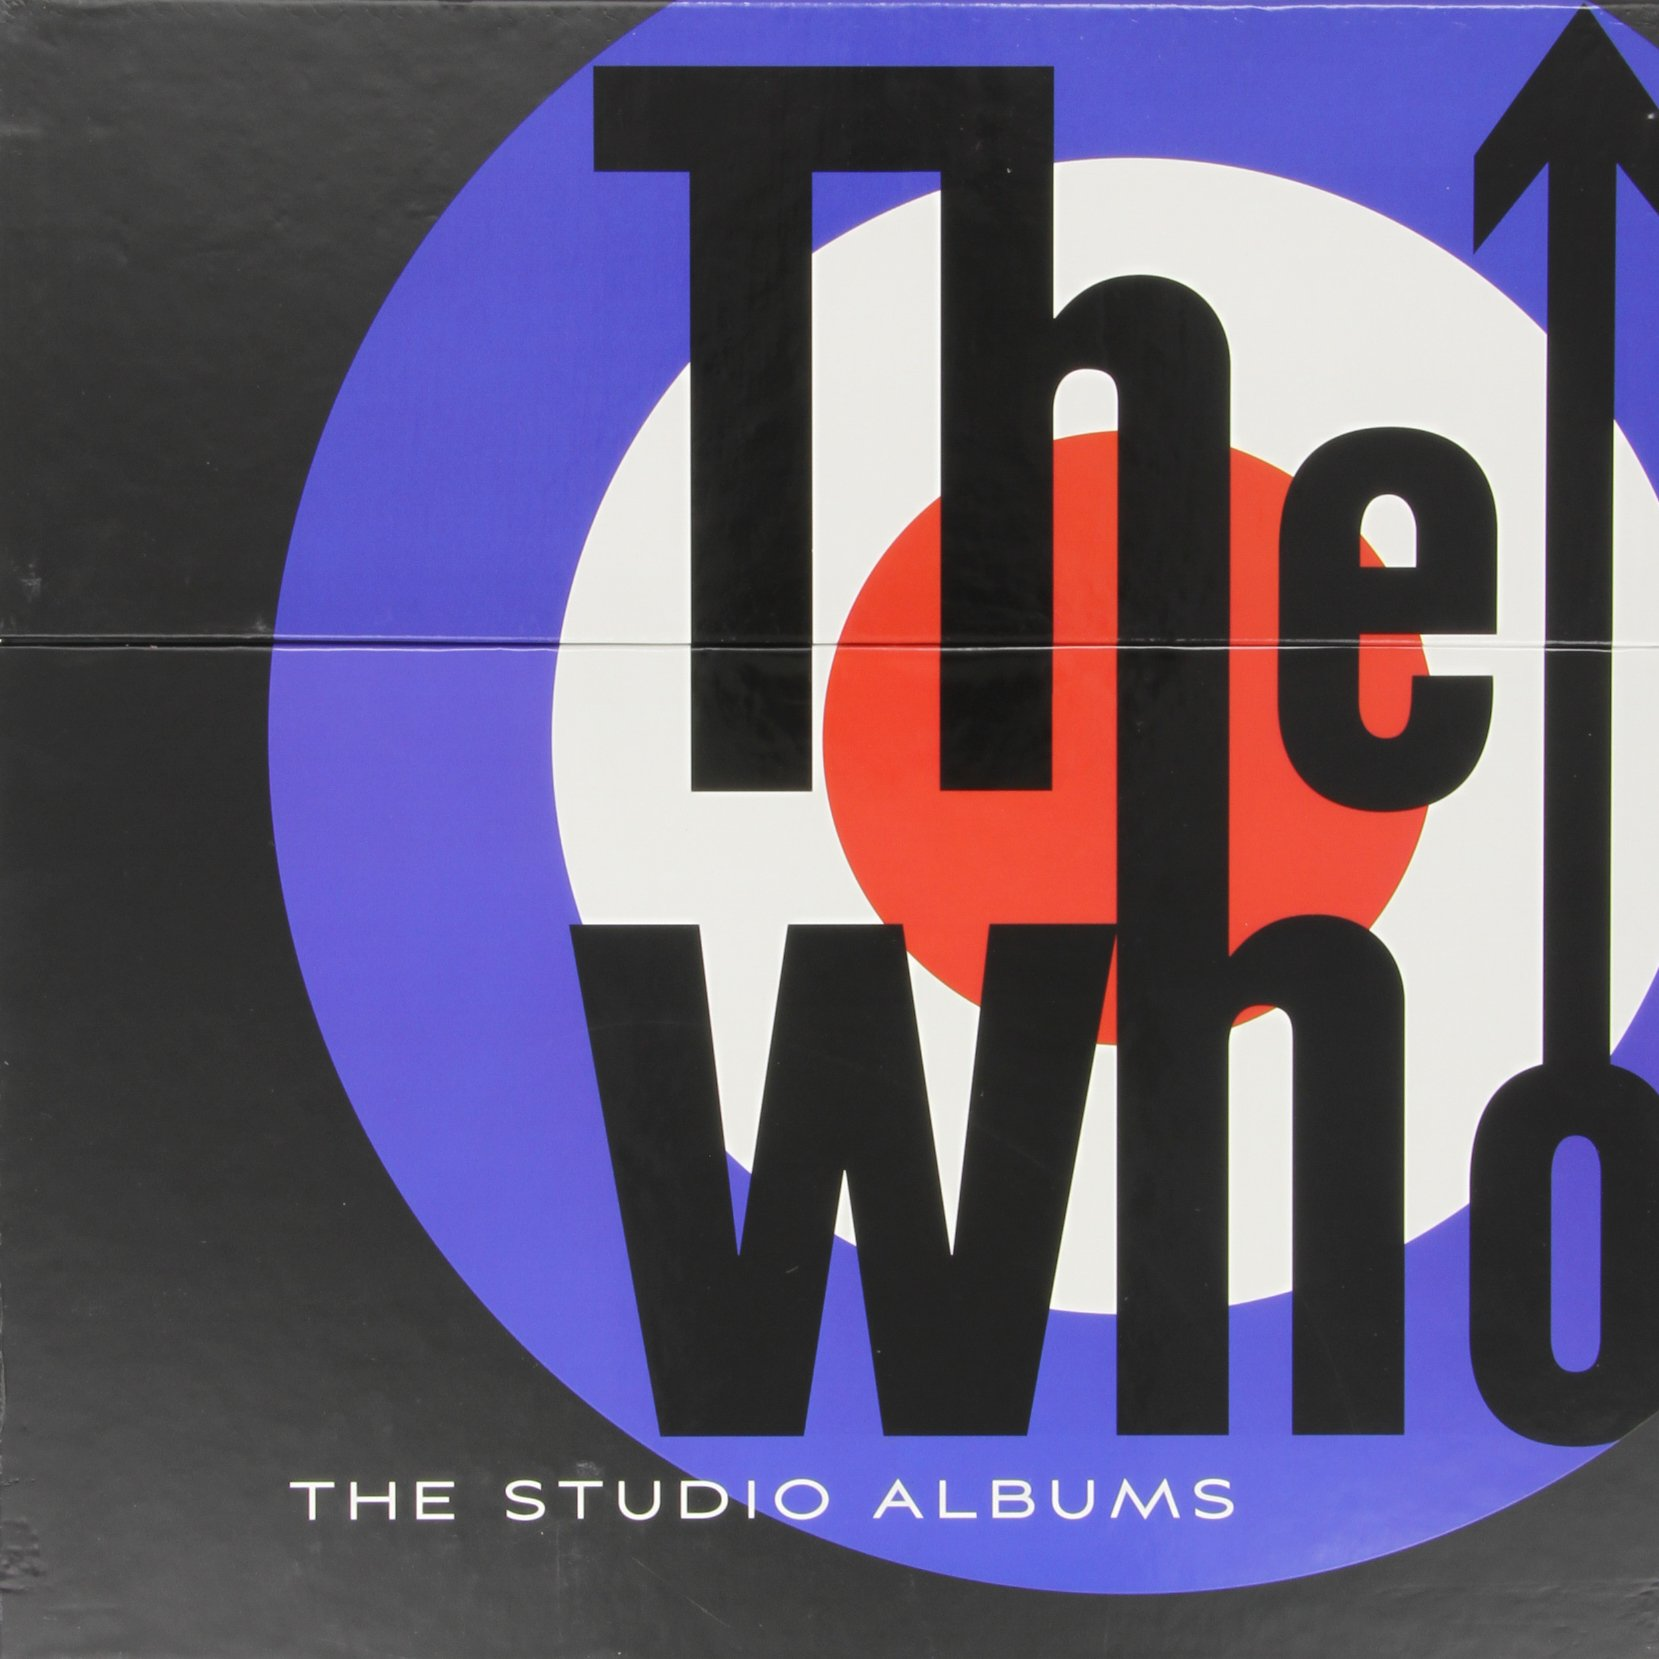 The Studio Albums [14 LP][Box Set] by VINYL